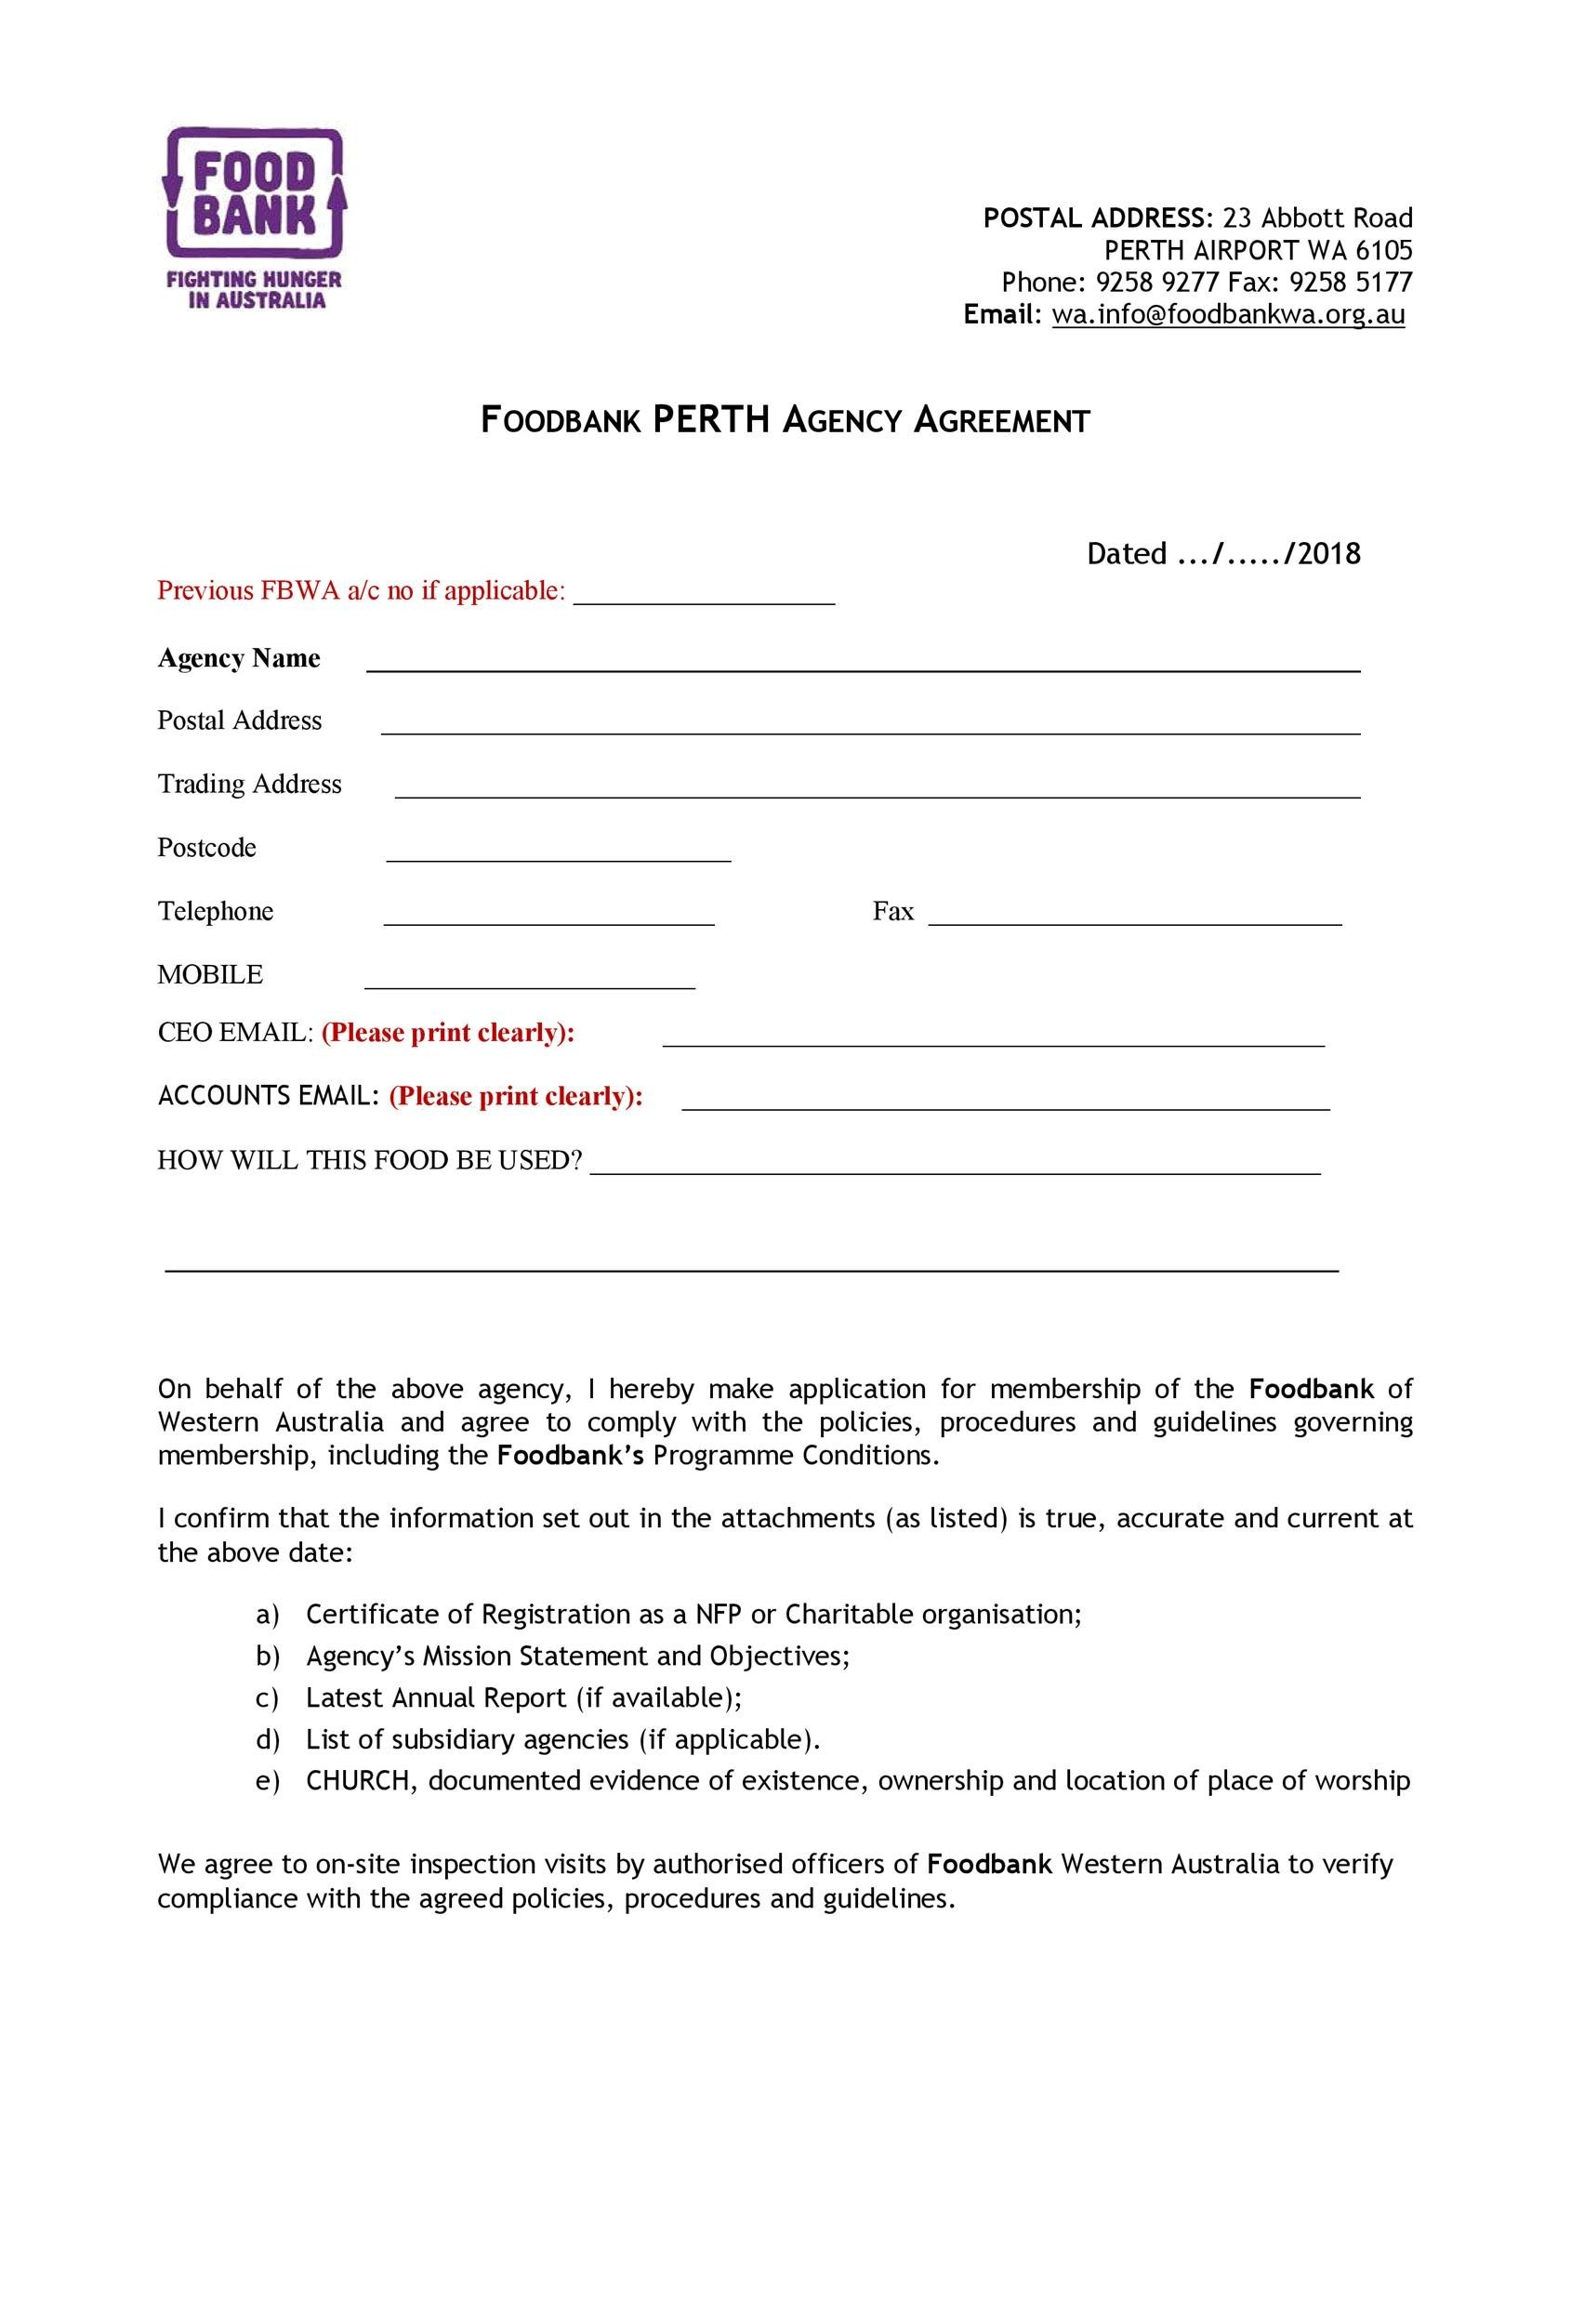 Free agency agreement 38